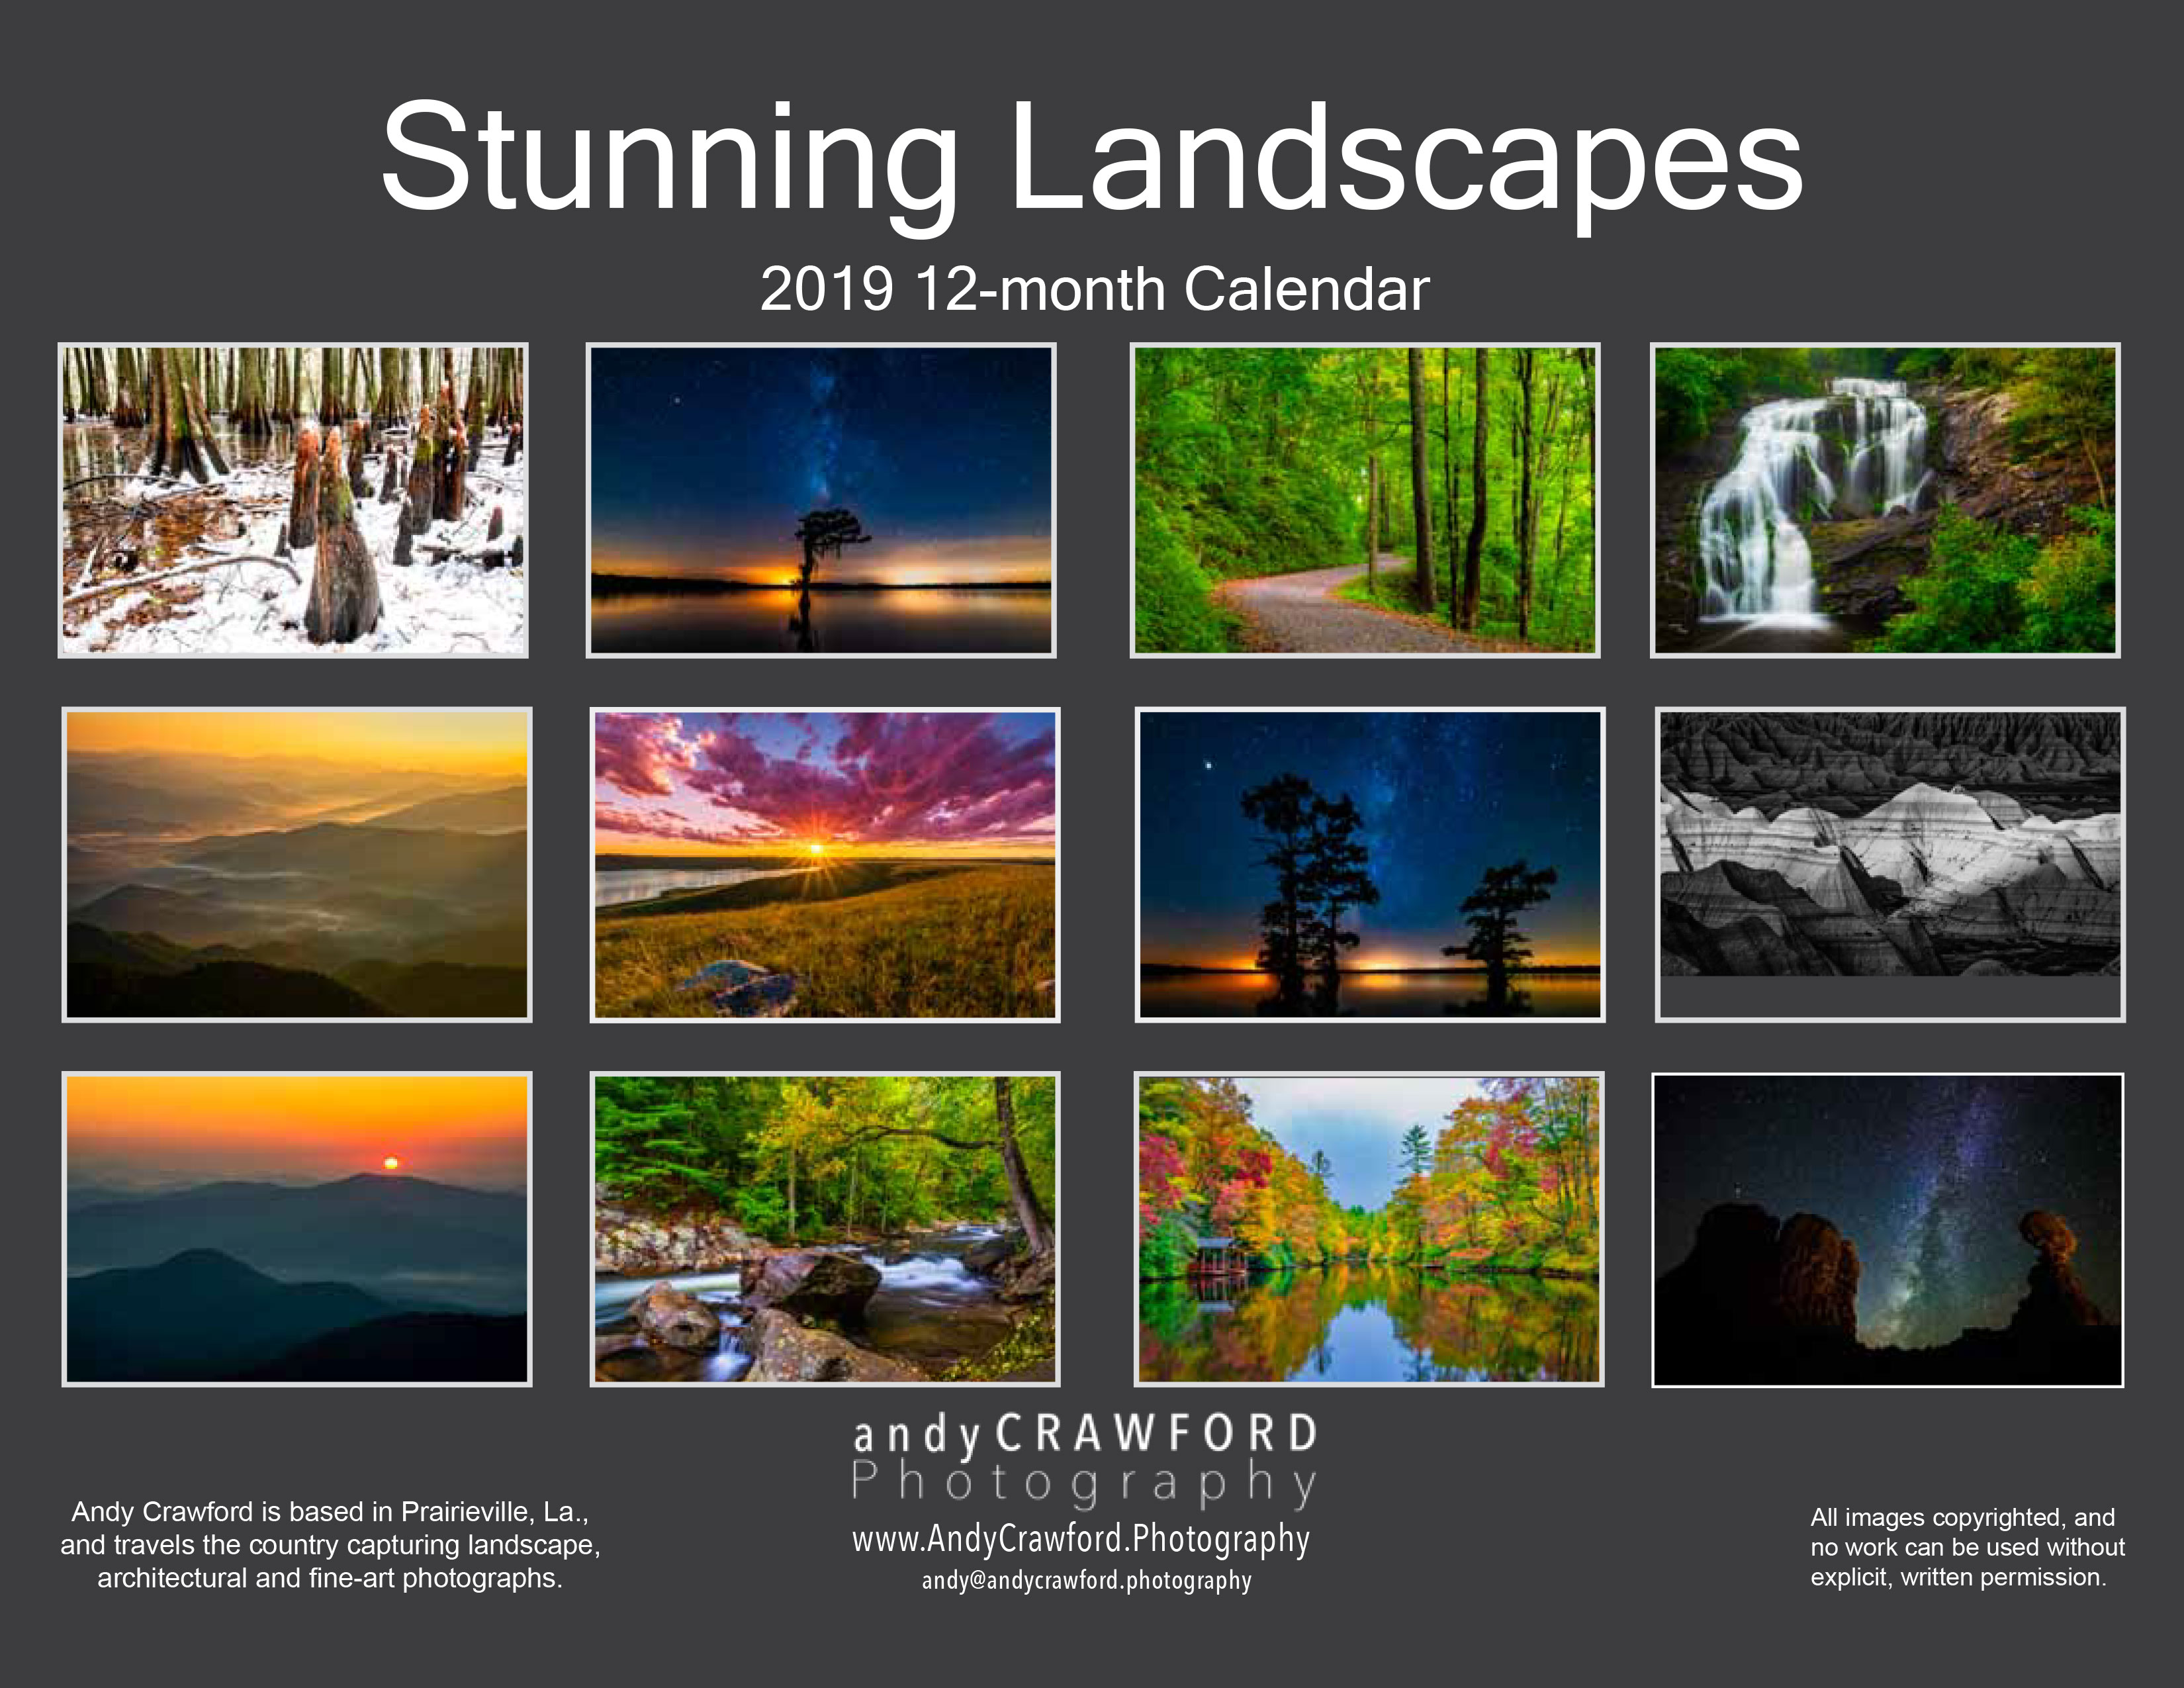 images?q=tbn:ANd9GcQh_l3eQ5xwiPy07kGEXjmjgmBKBRB7H2mRxCGhv1tFWg5c_mWT Best Media Landscape Photography Calendar that you must See @capturingmomentsphotography.net